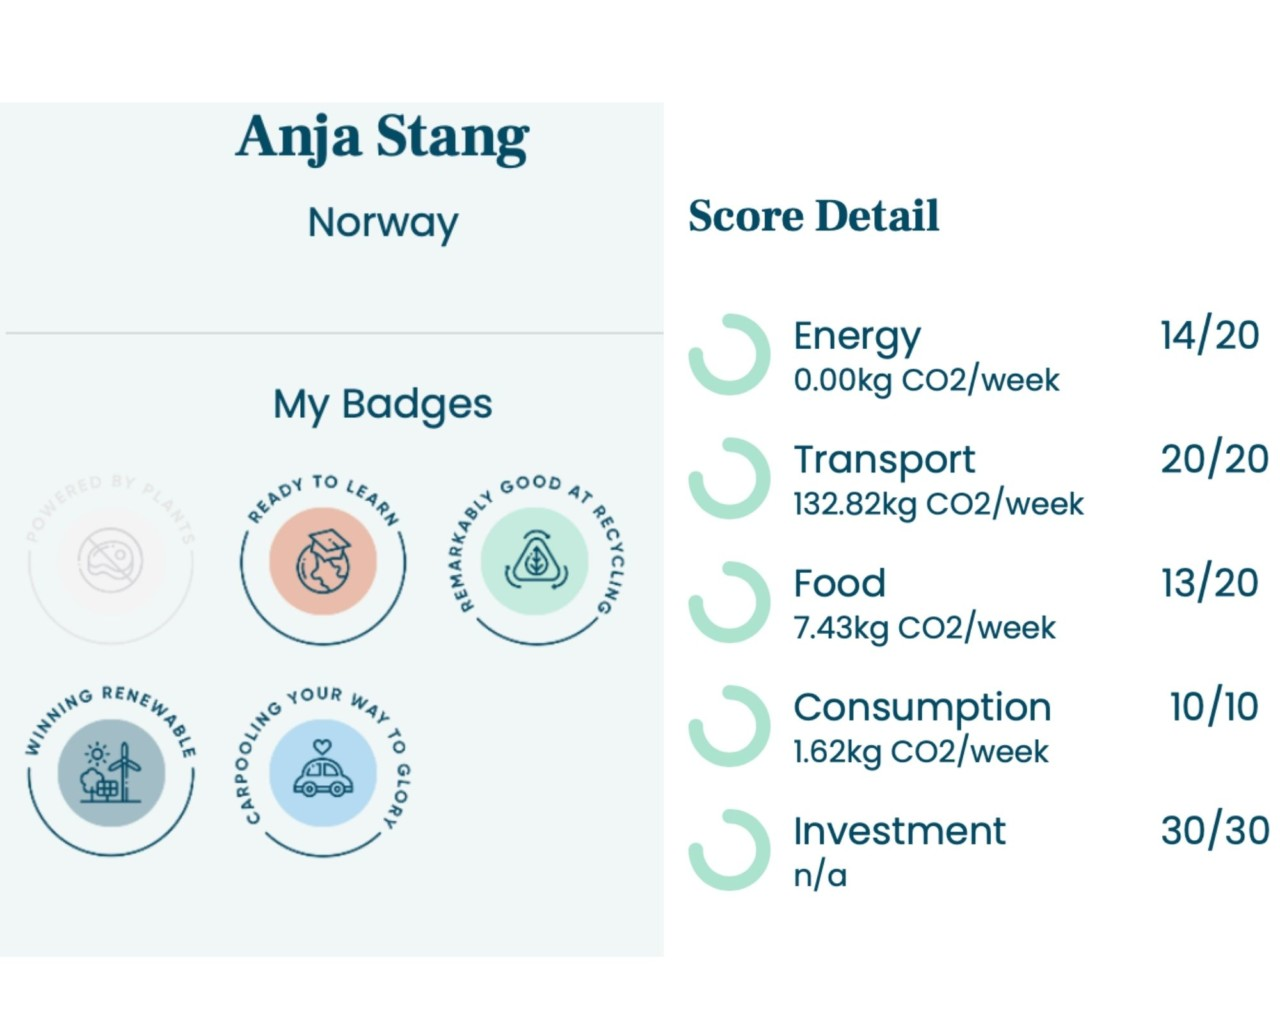 aurora-sustainability-carbon-quiz-mine-karbon-utslipp-anja-stang